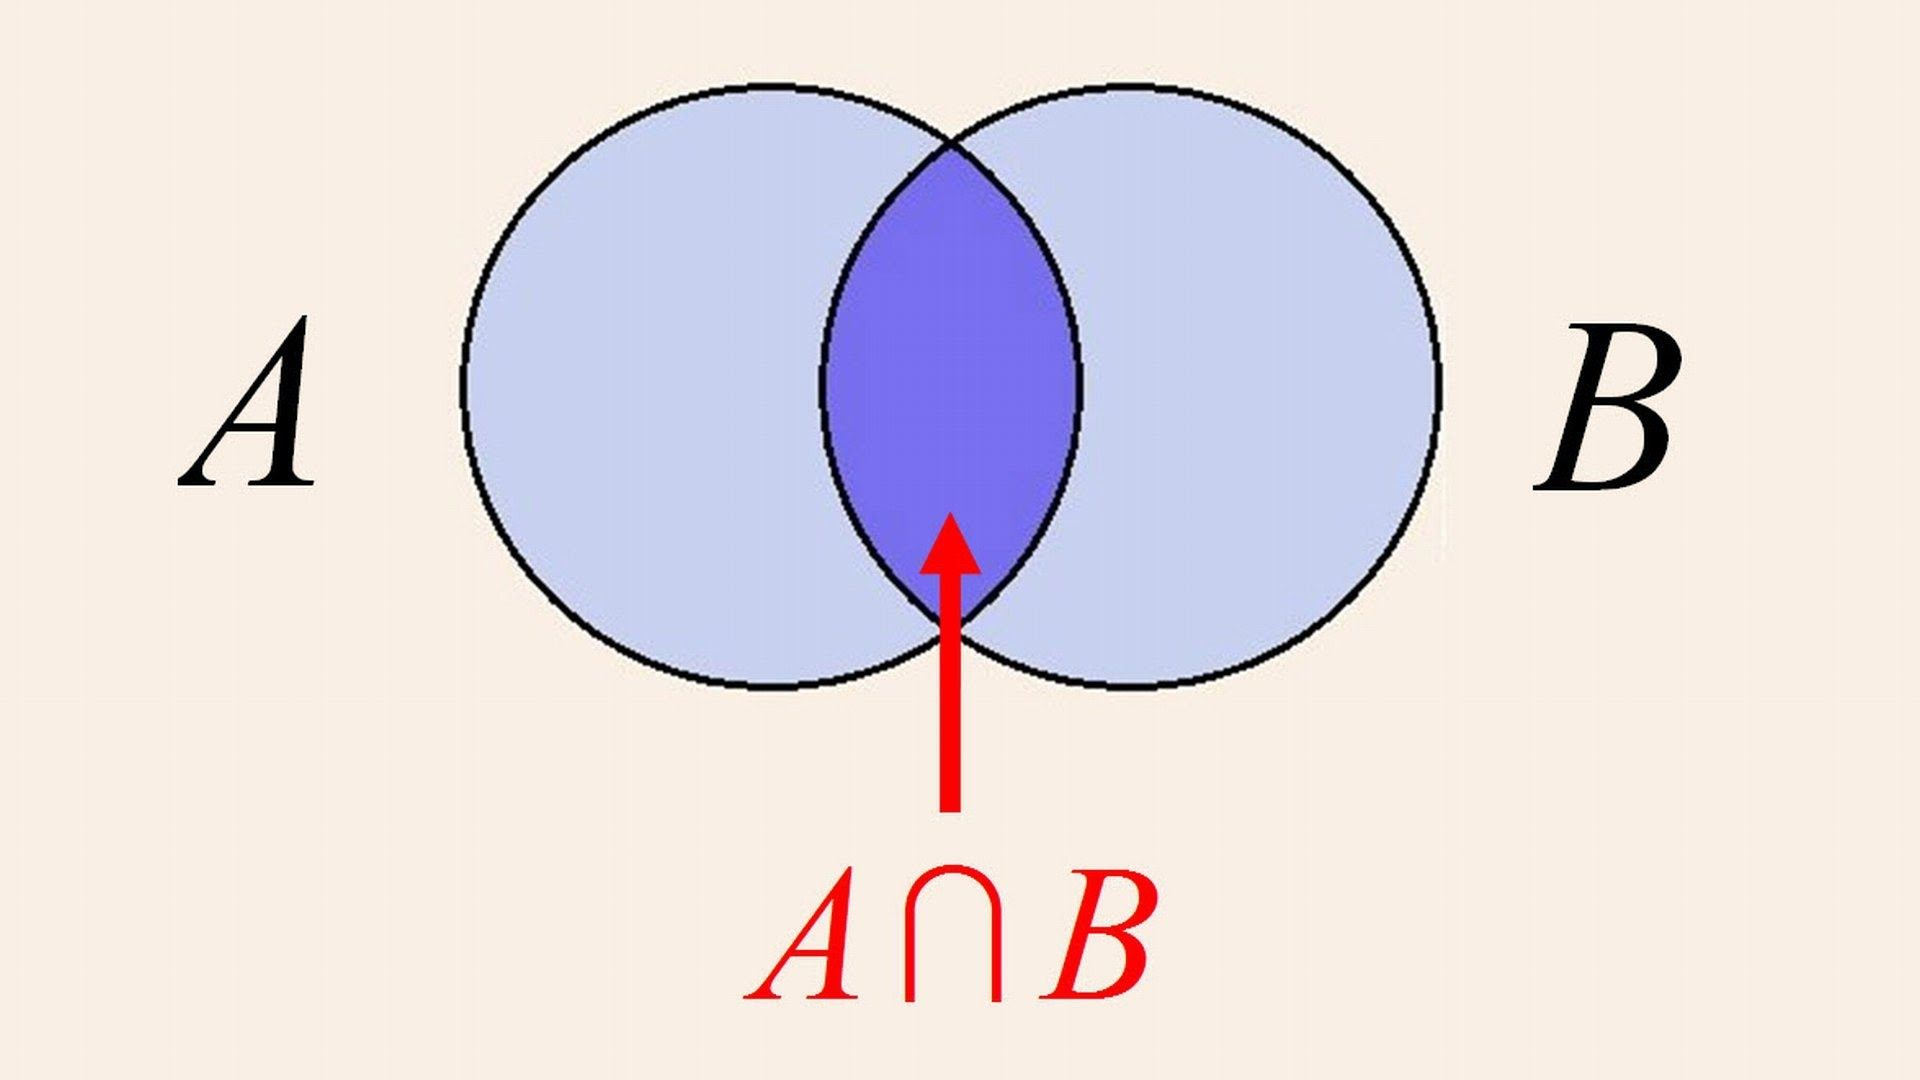 Algebra 3 Venn Diagrams Unions And Intersections Venn Diagram Venn Diagram Examples Algebra [ 1080 x 1920 Pixel ]